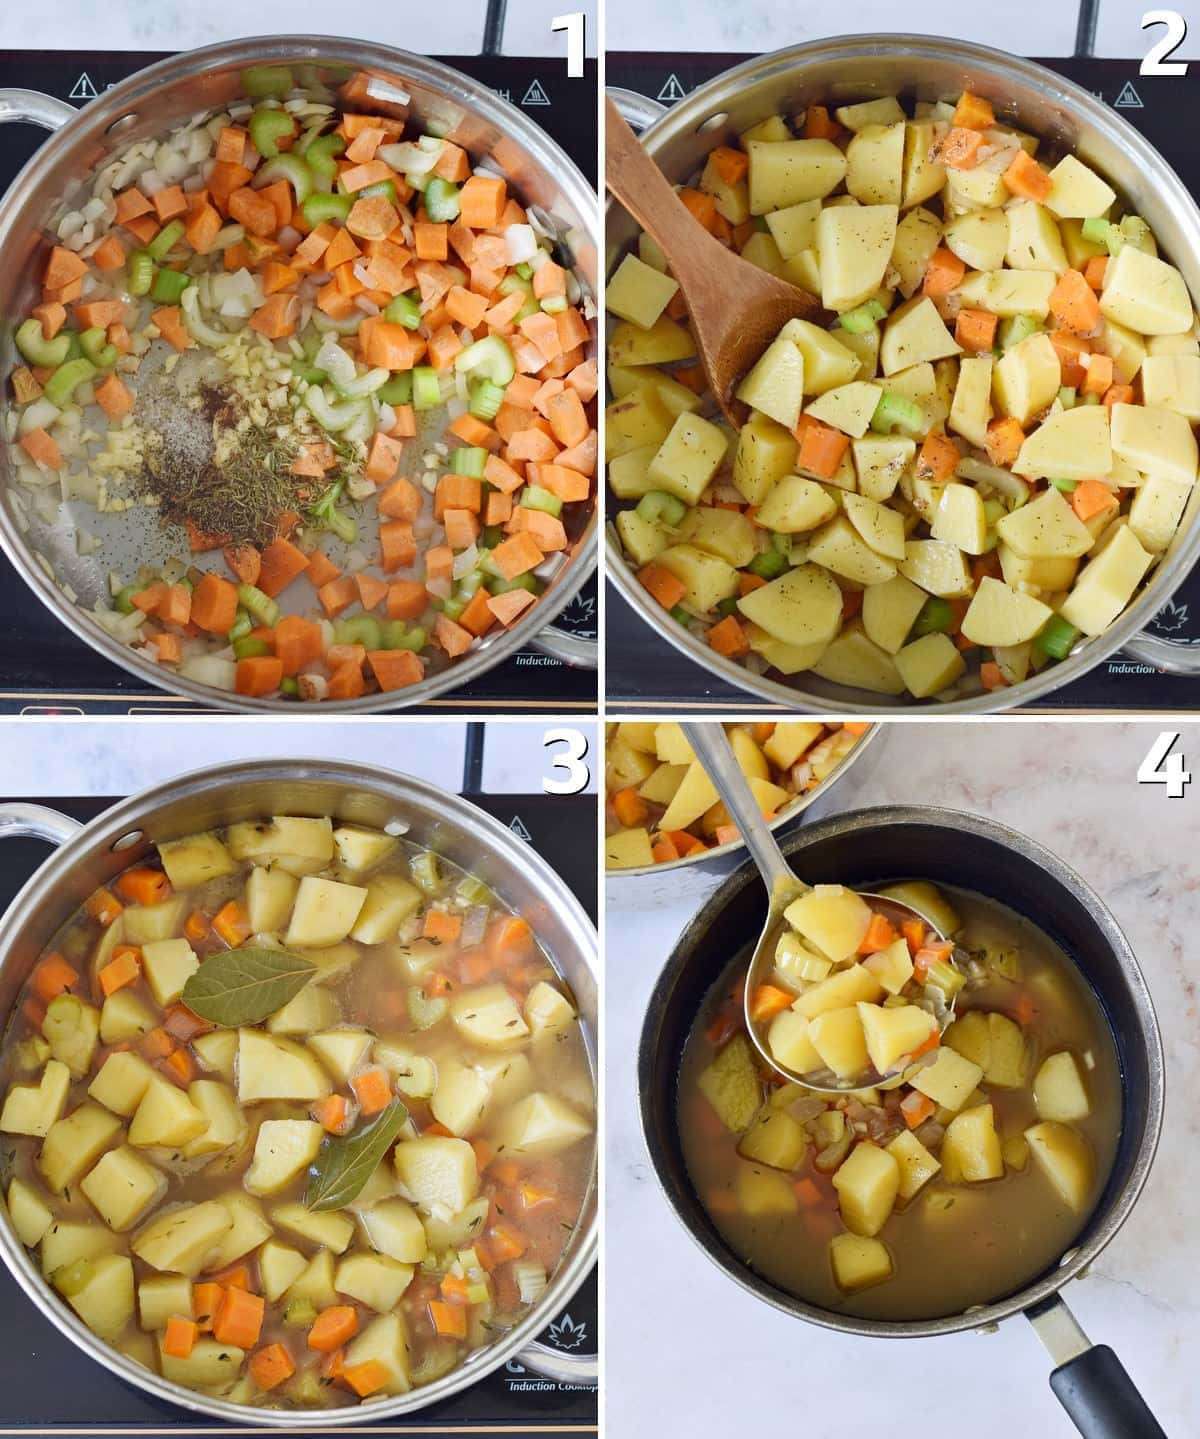 4 step-by-step photos of how to cook a stew with potatoes and veggies